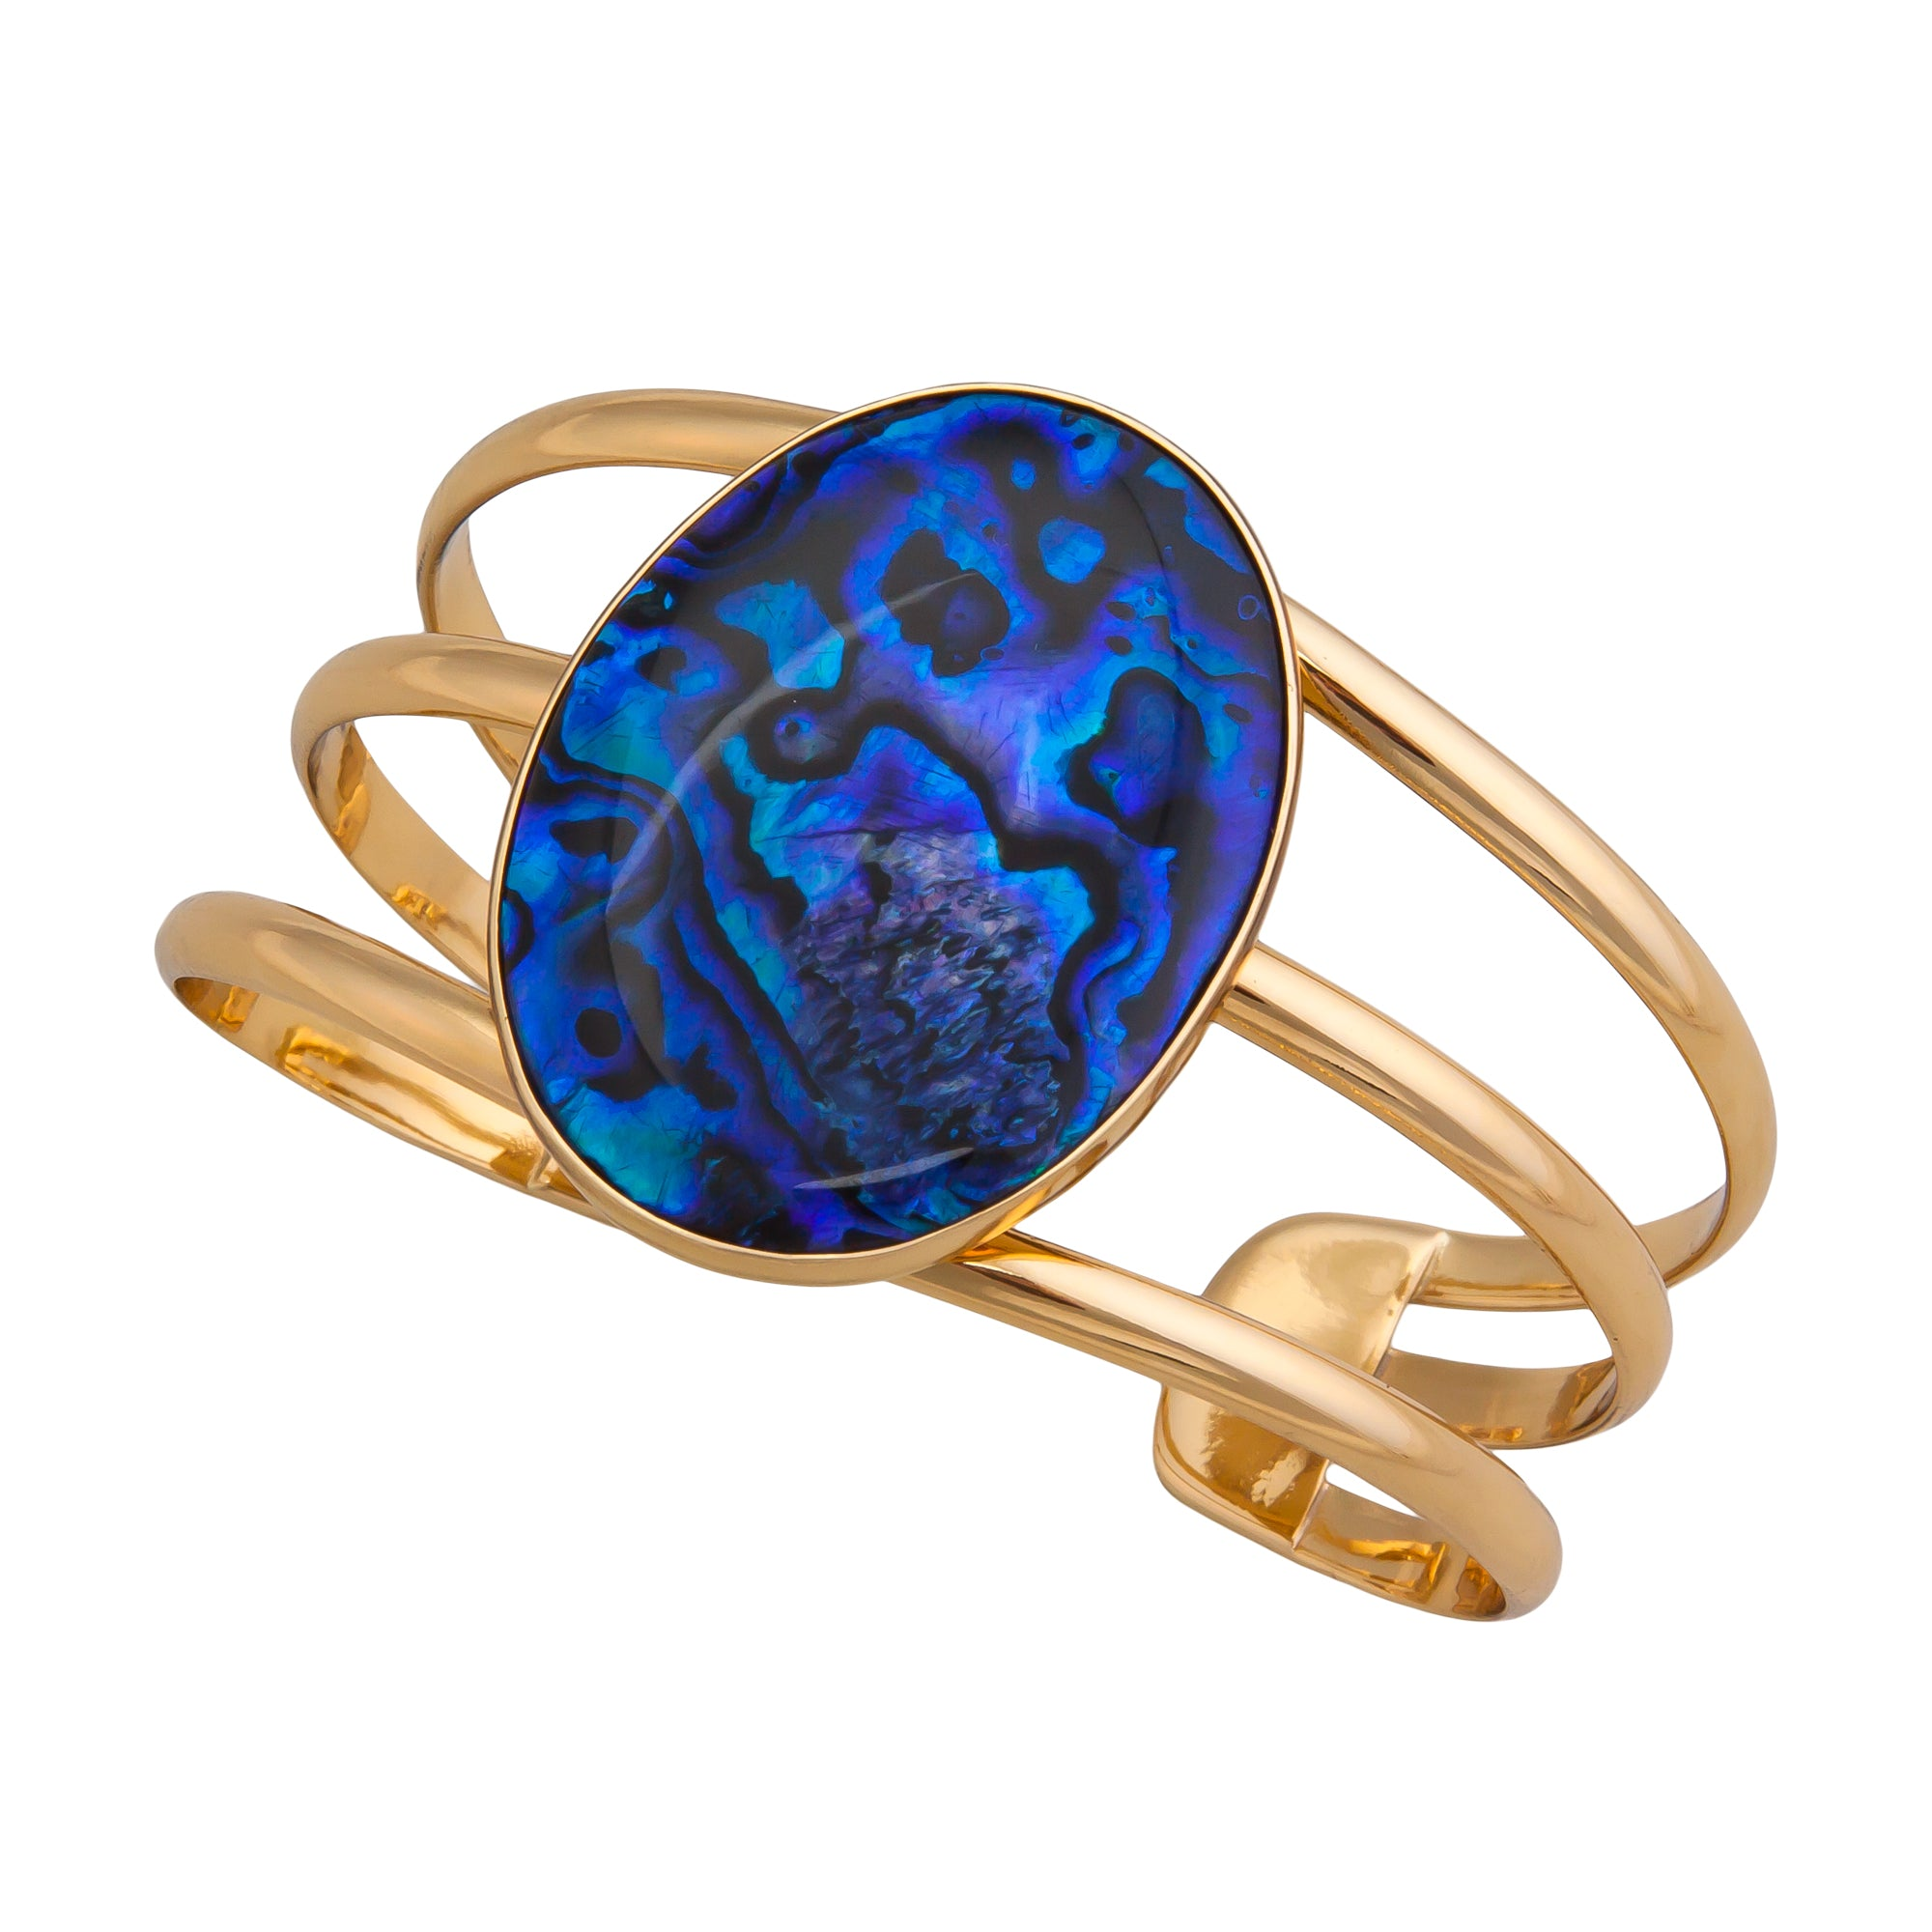 Alchemia Blue Abalone Multi Band Cuff